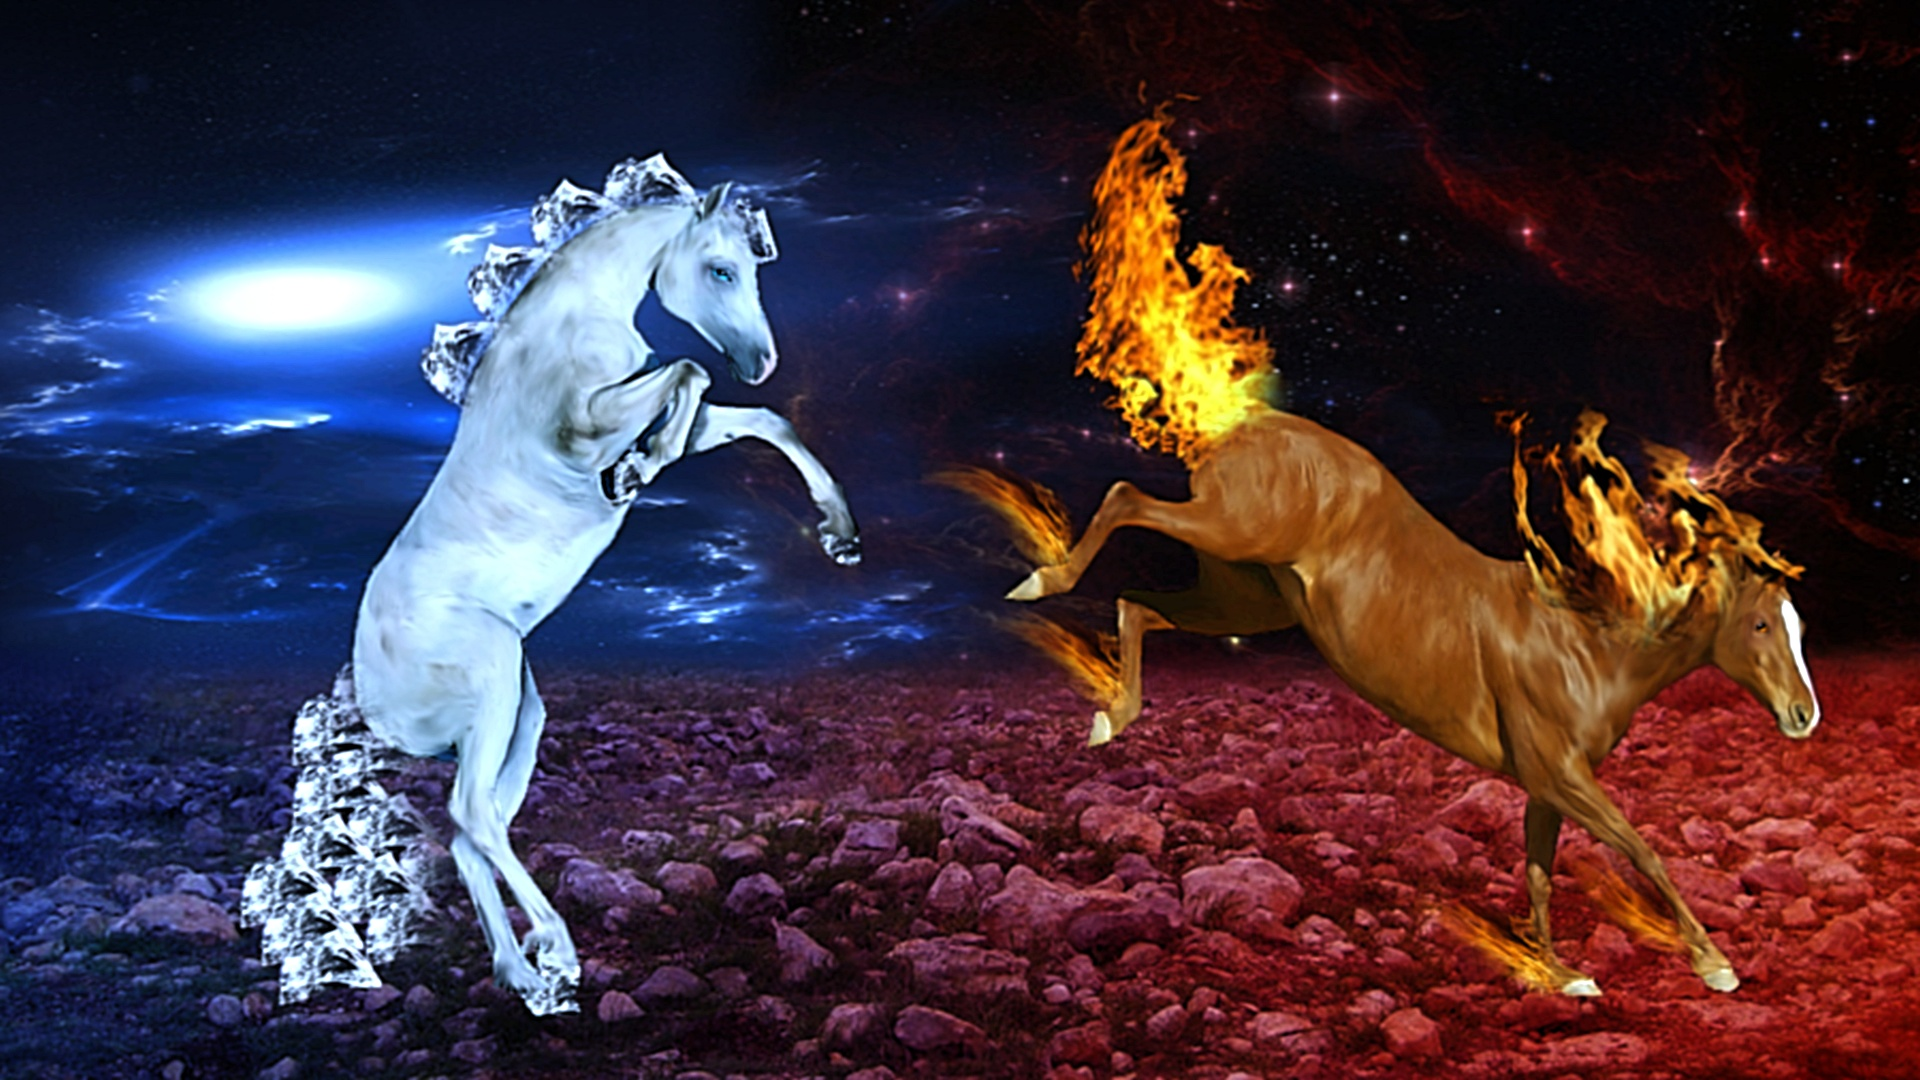 Blue Fire Horse Wallpaper Fire amp Ice FIRE AND ICE 1920x1080